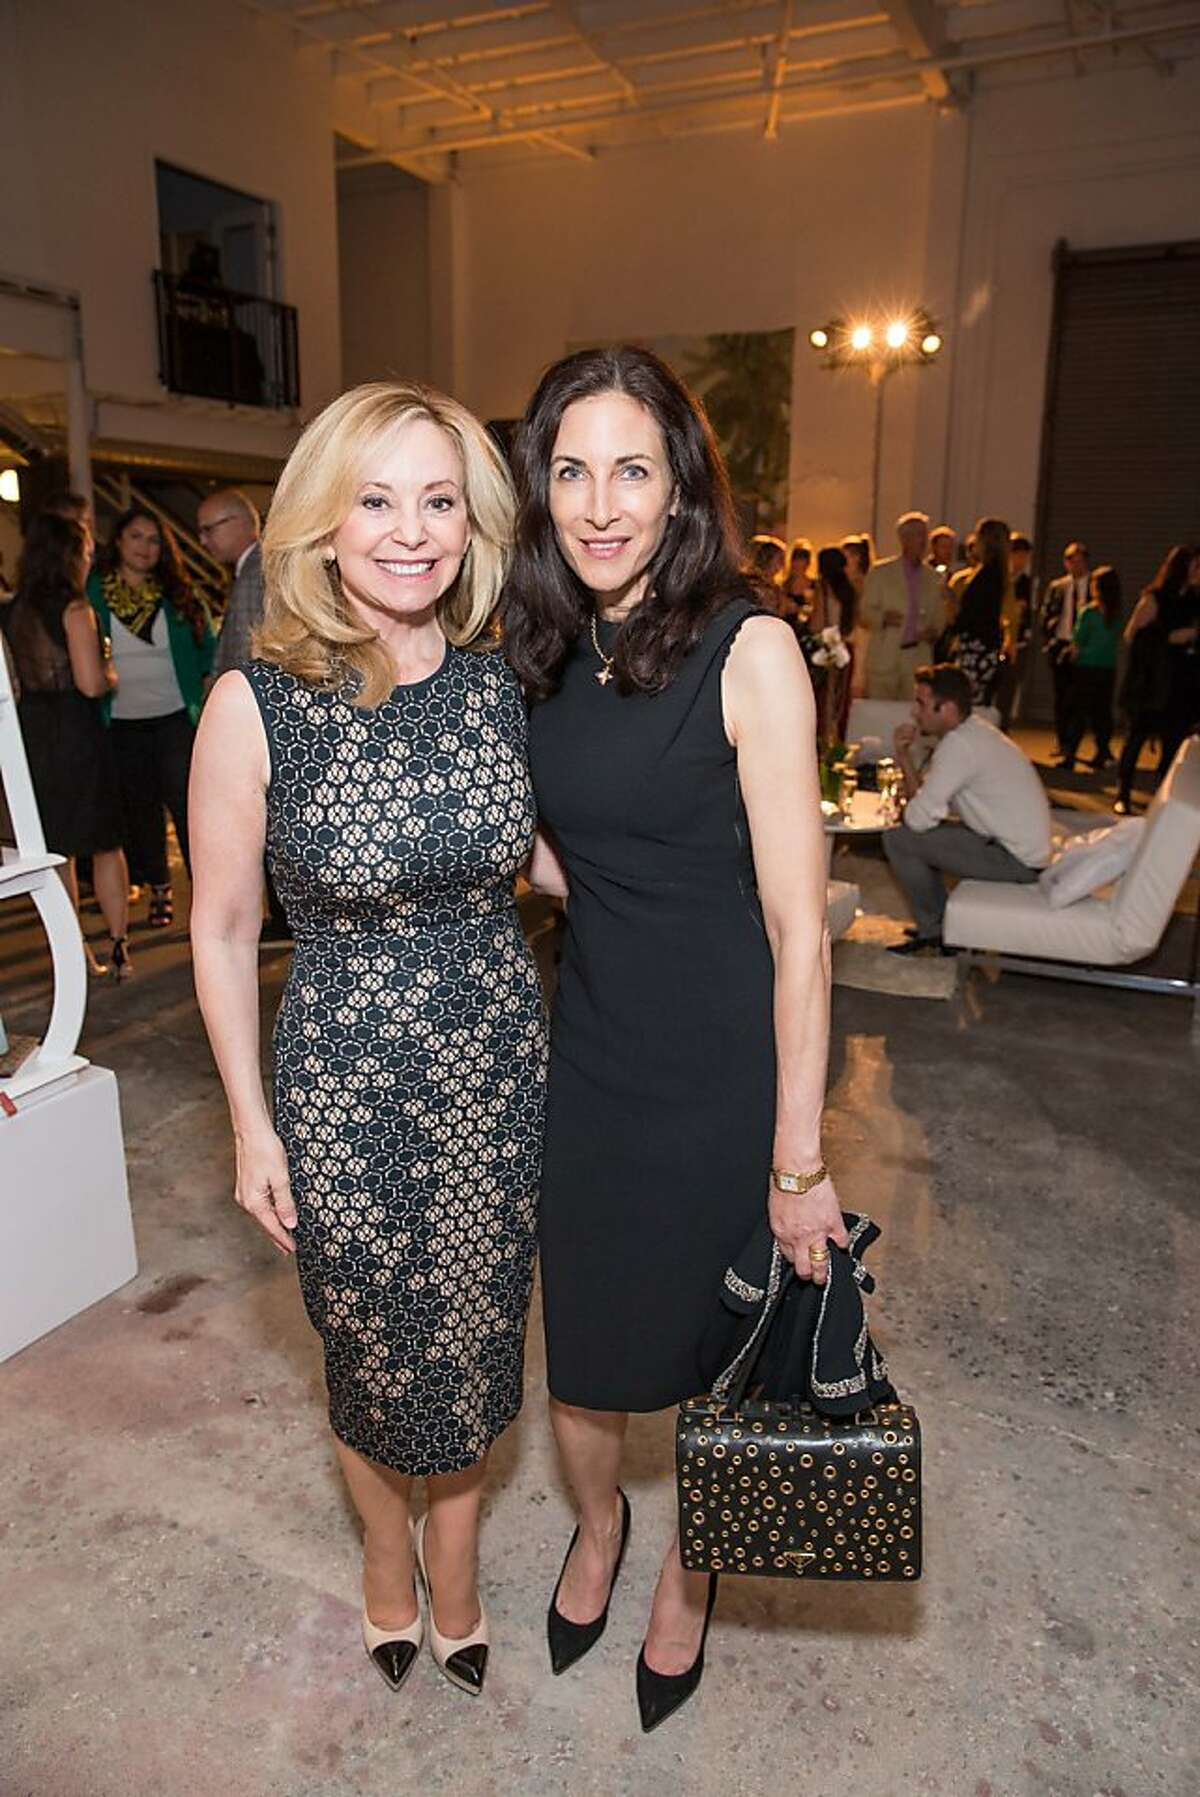 Julie Wainwright, left, and Stephanie Coyota at the RealReal party May 15, 2013 in a warehouse in San Francisco.